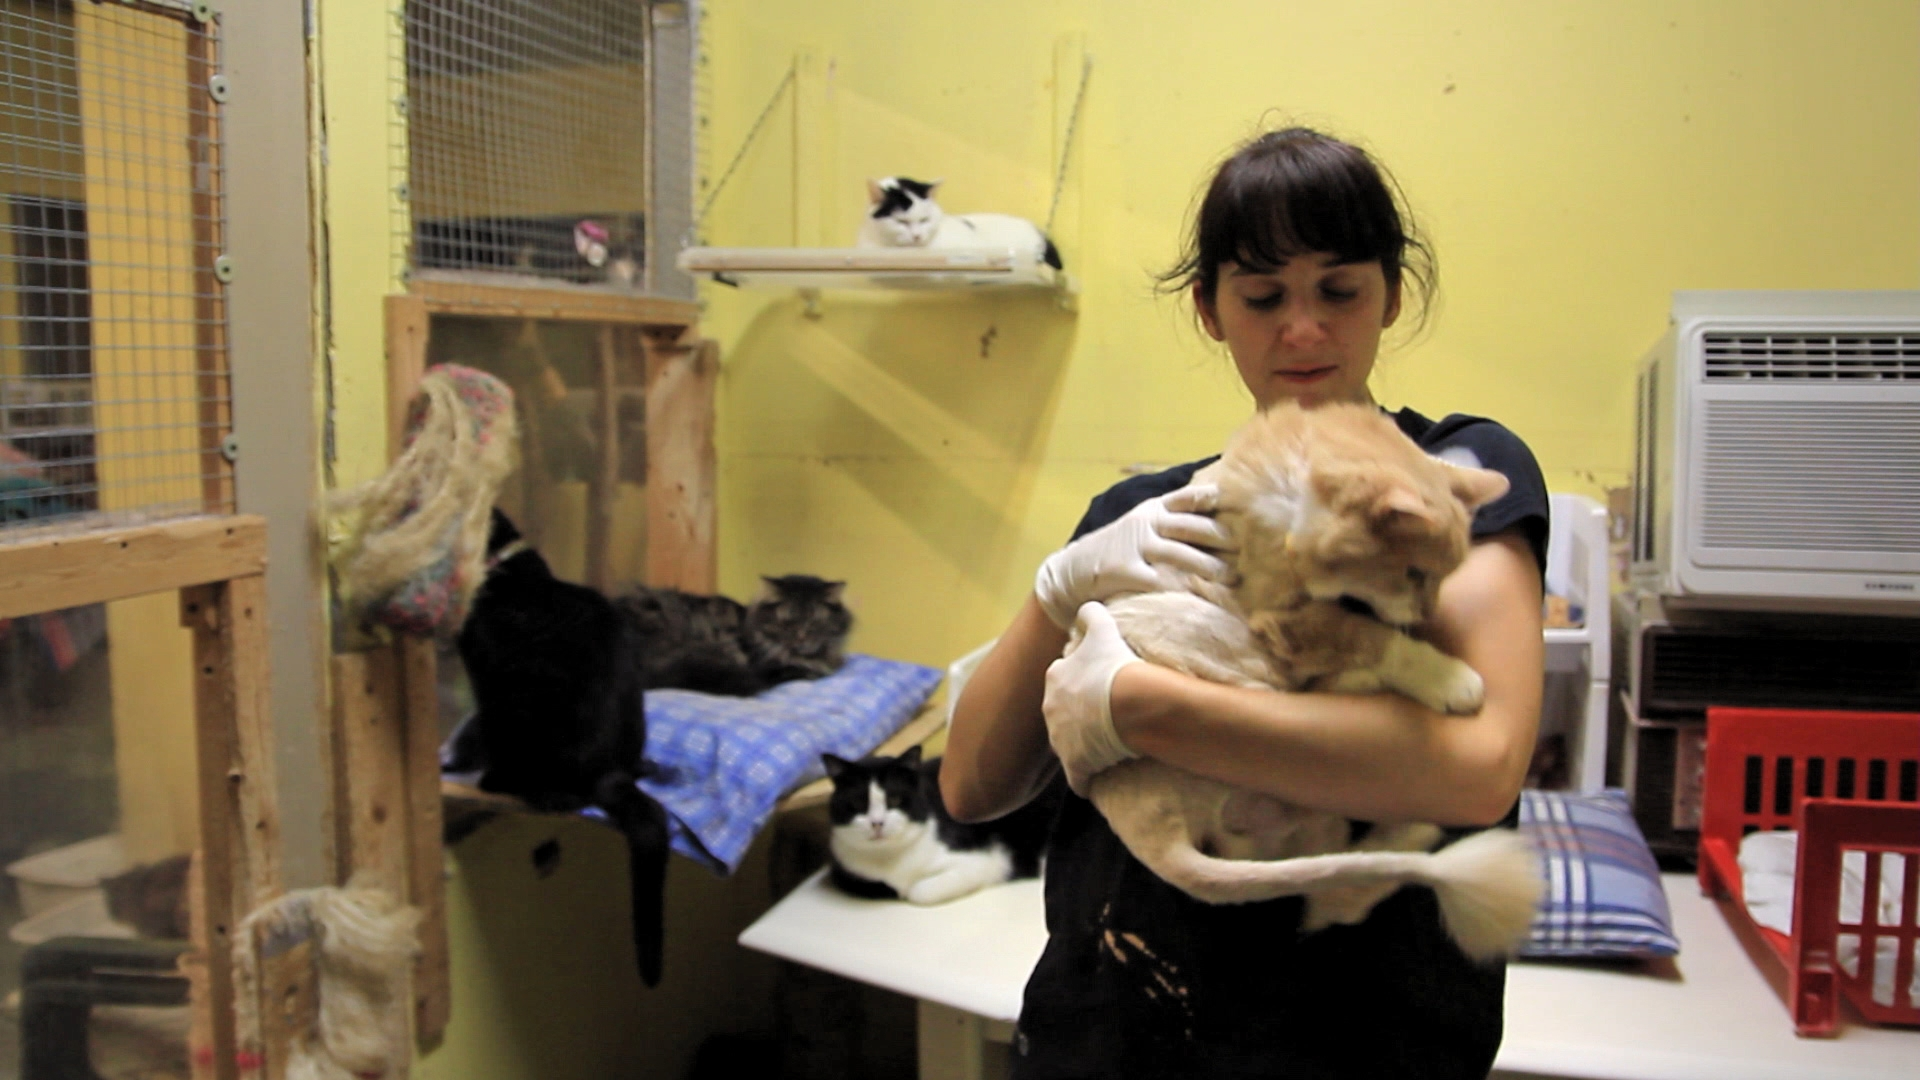 No Kids For Me, Thanks - Melissa Berniqué has been a stepmother on several occasions, which made her realize she didn't want kids of her own. She volunteers several days a week at a cat shelter.